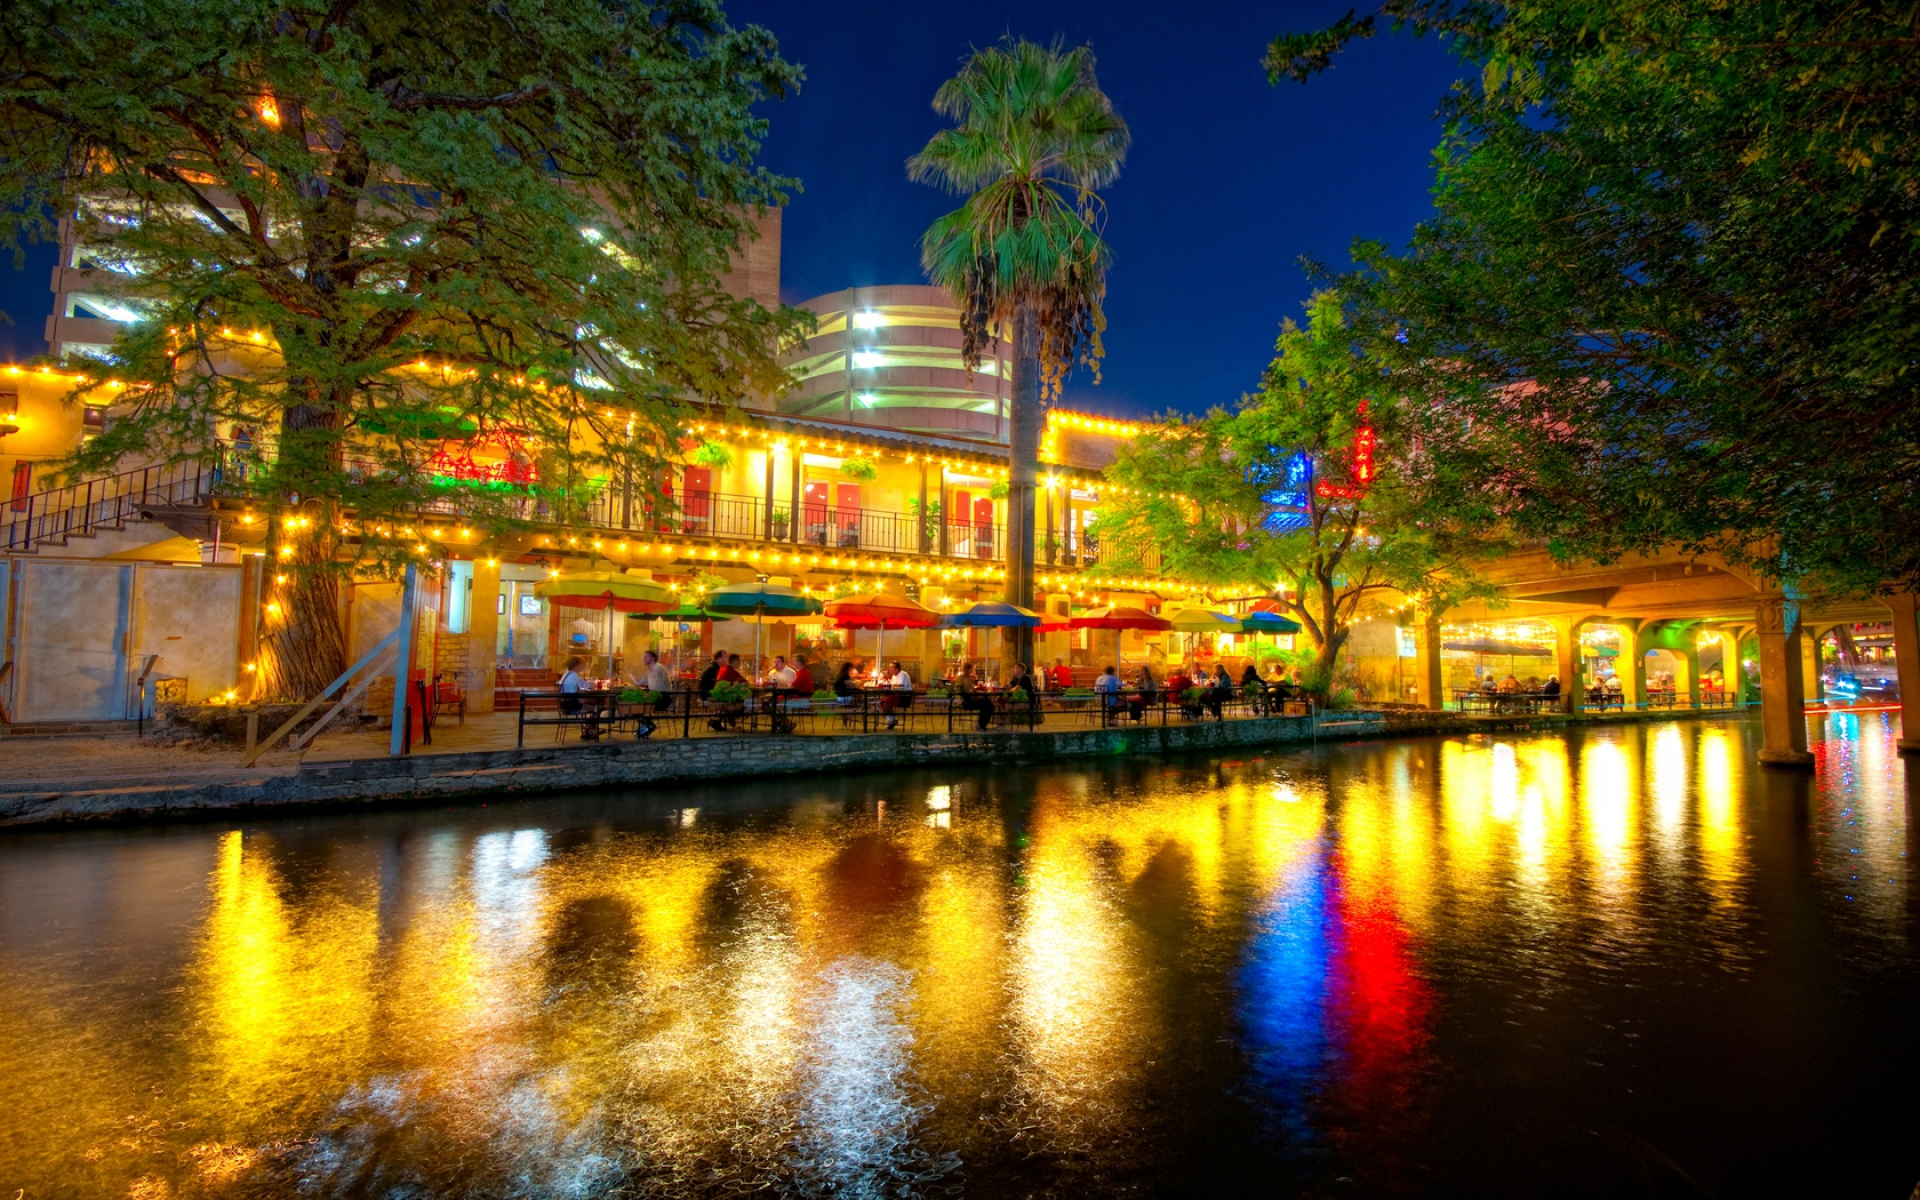 san antonio texas wallpaper